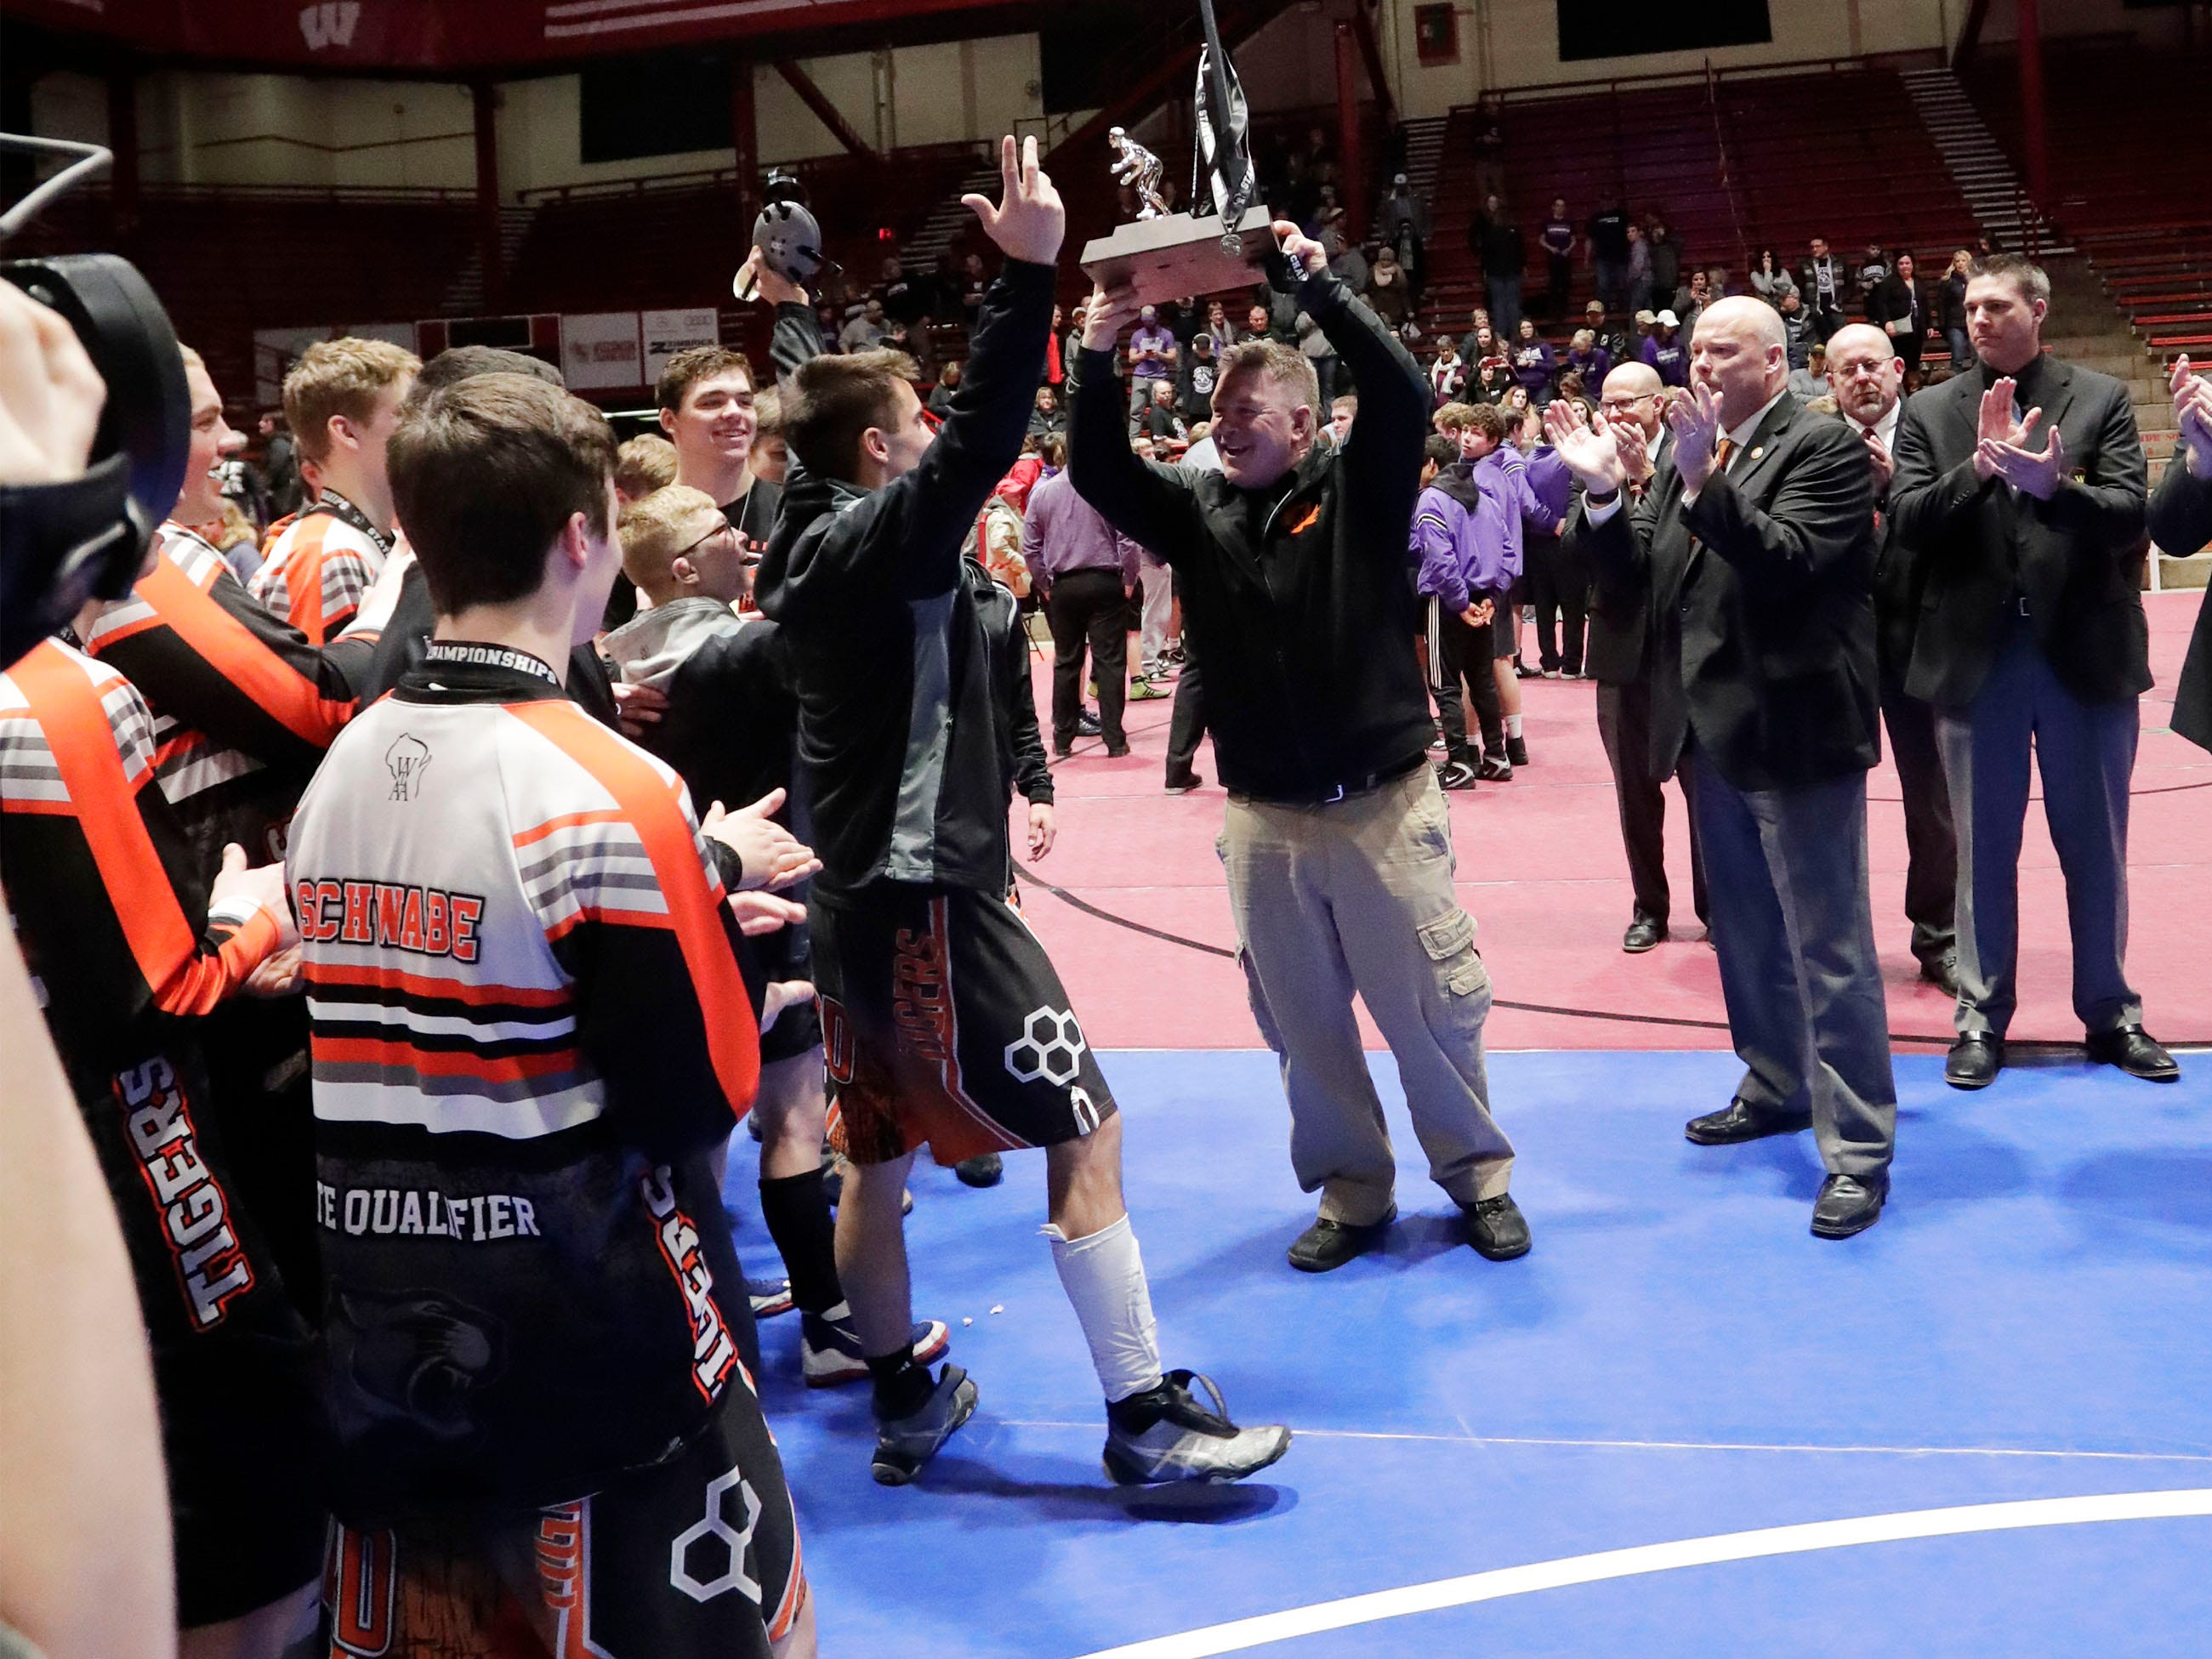 Stratford head coach Joe Schwabe, center, holds high the second place trophy following their defeat from Fennimore for the state team title, Saturday, March 2, 2019, in Madison, Wis.